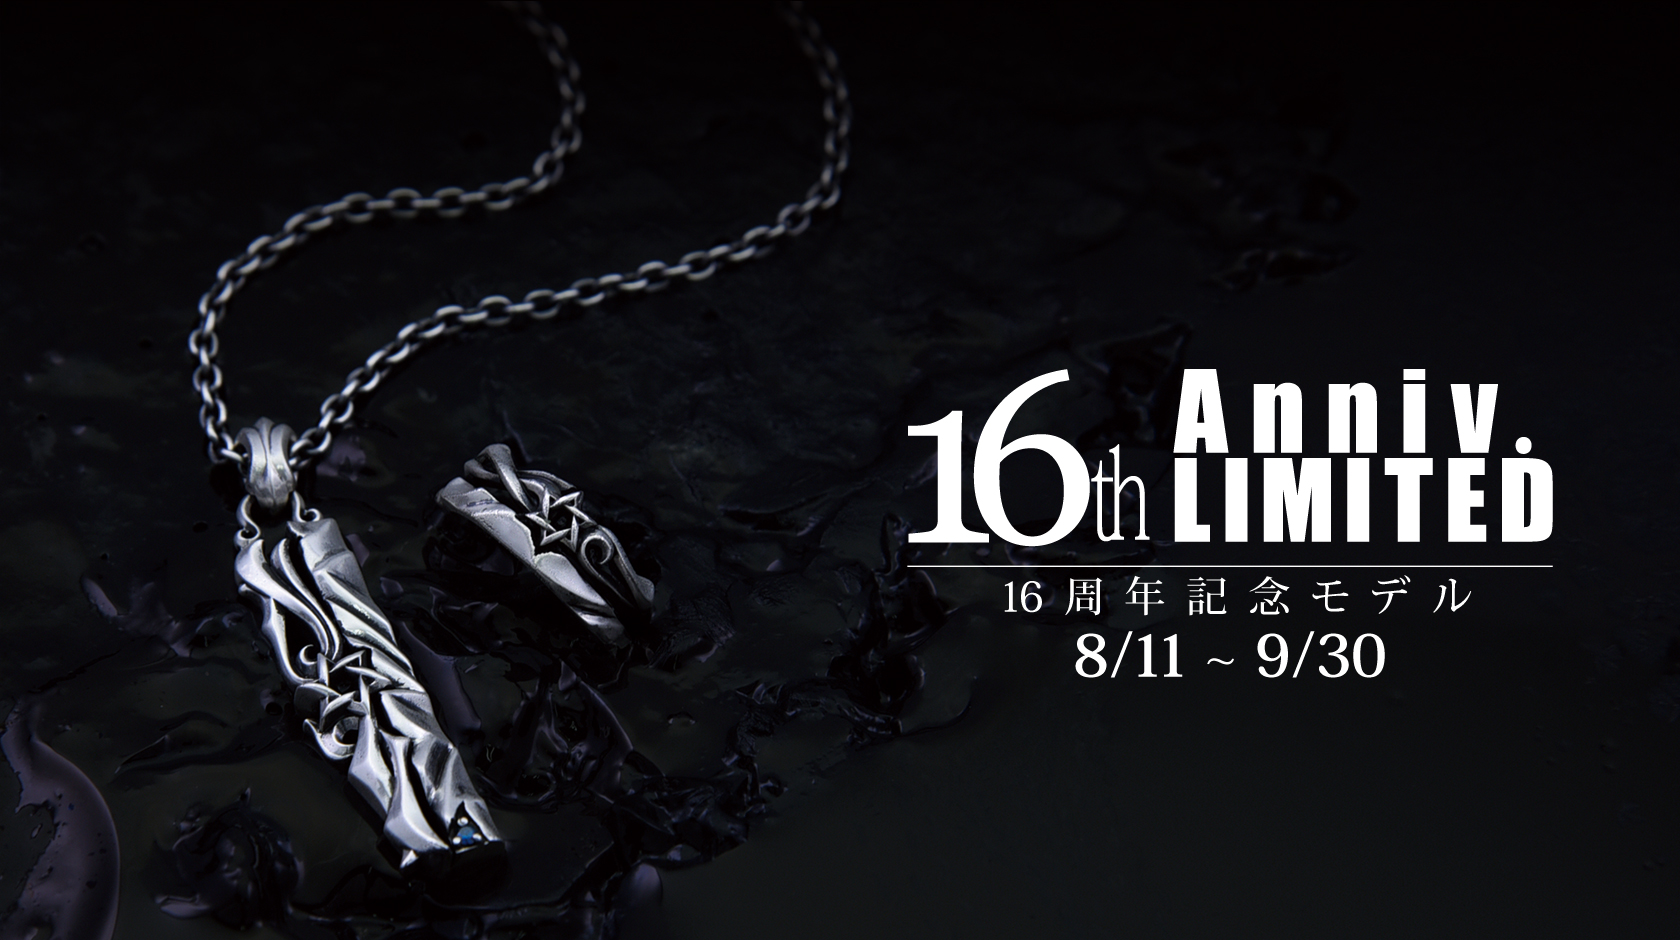 16th LIMITED MODEL